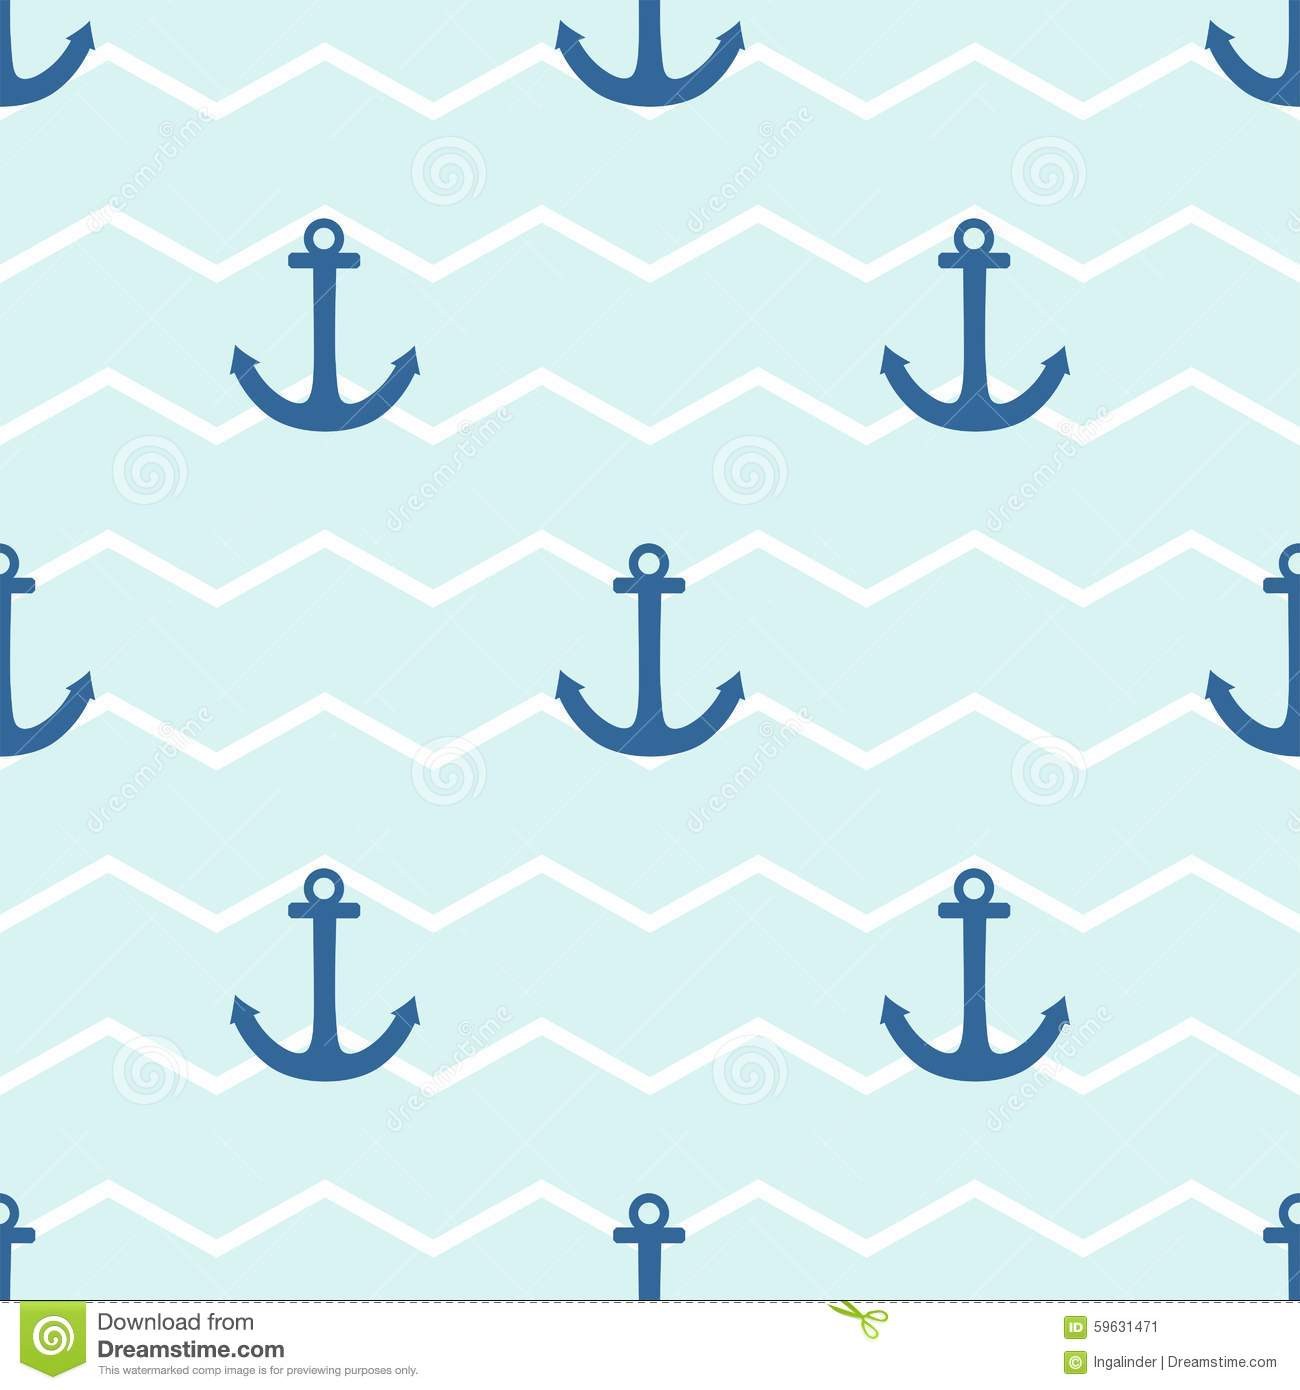 Nautical Color Tile Sailor Vector Pattern With Anchor On White And Blue